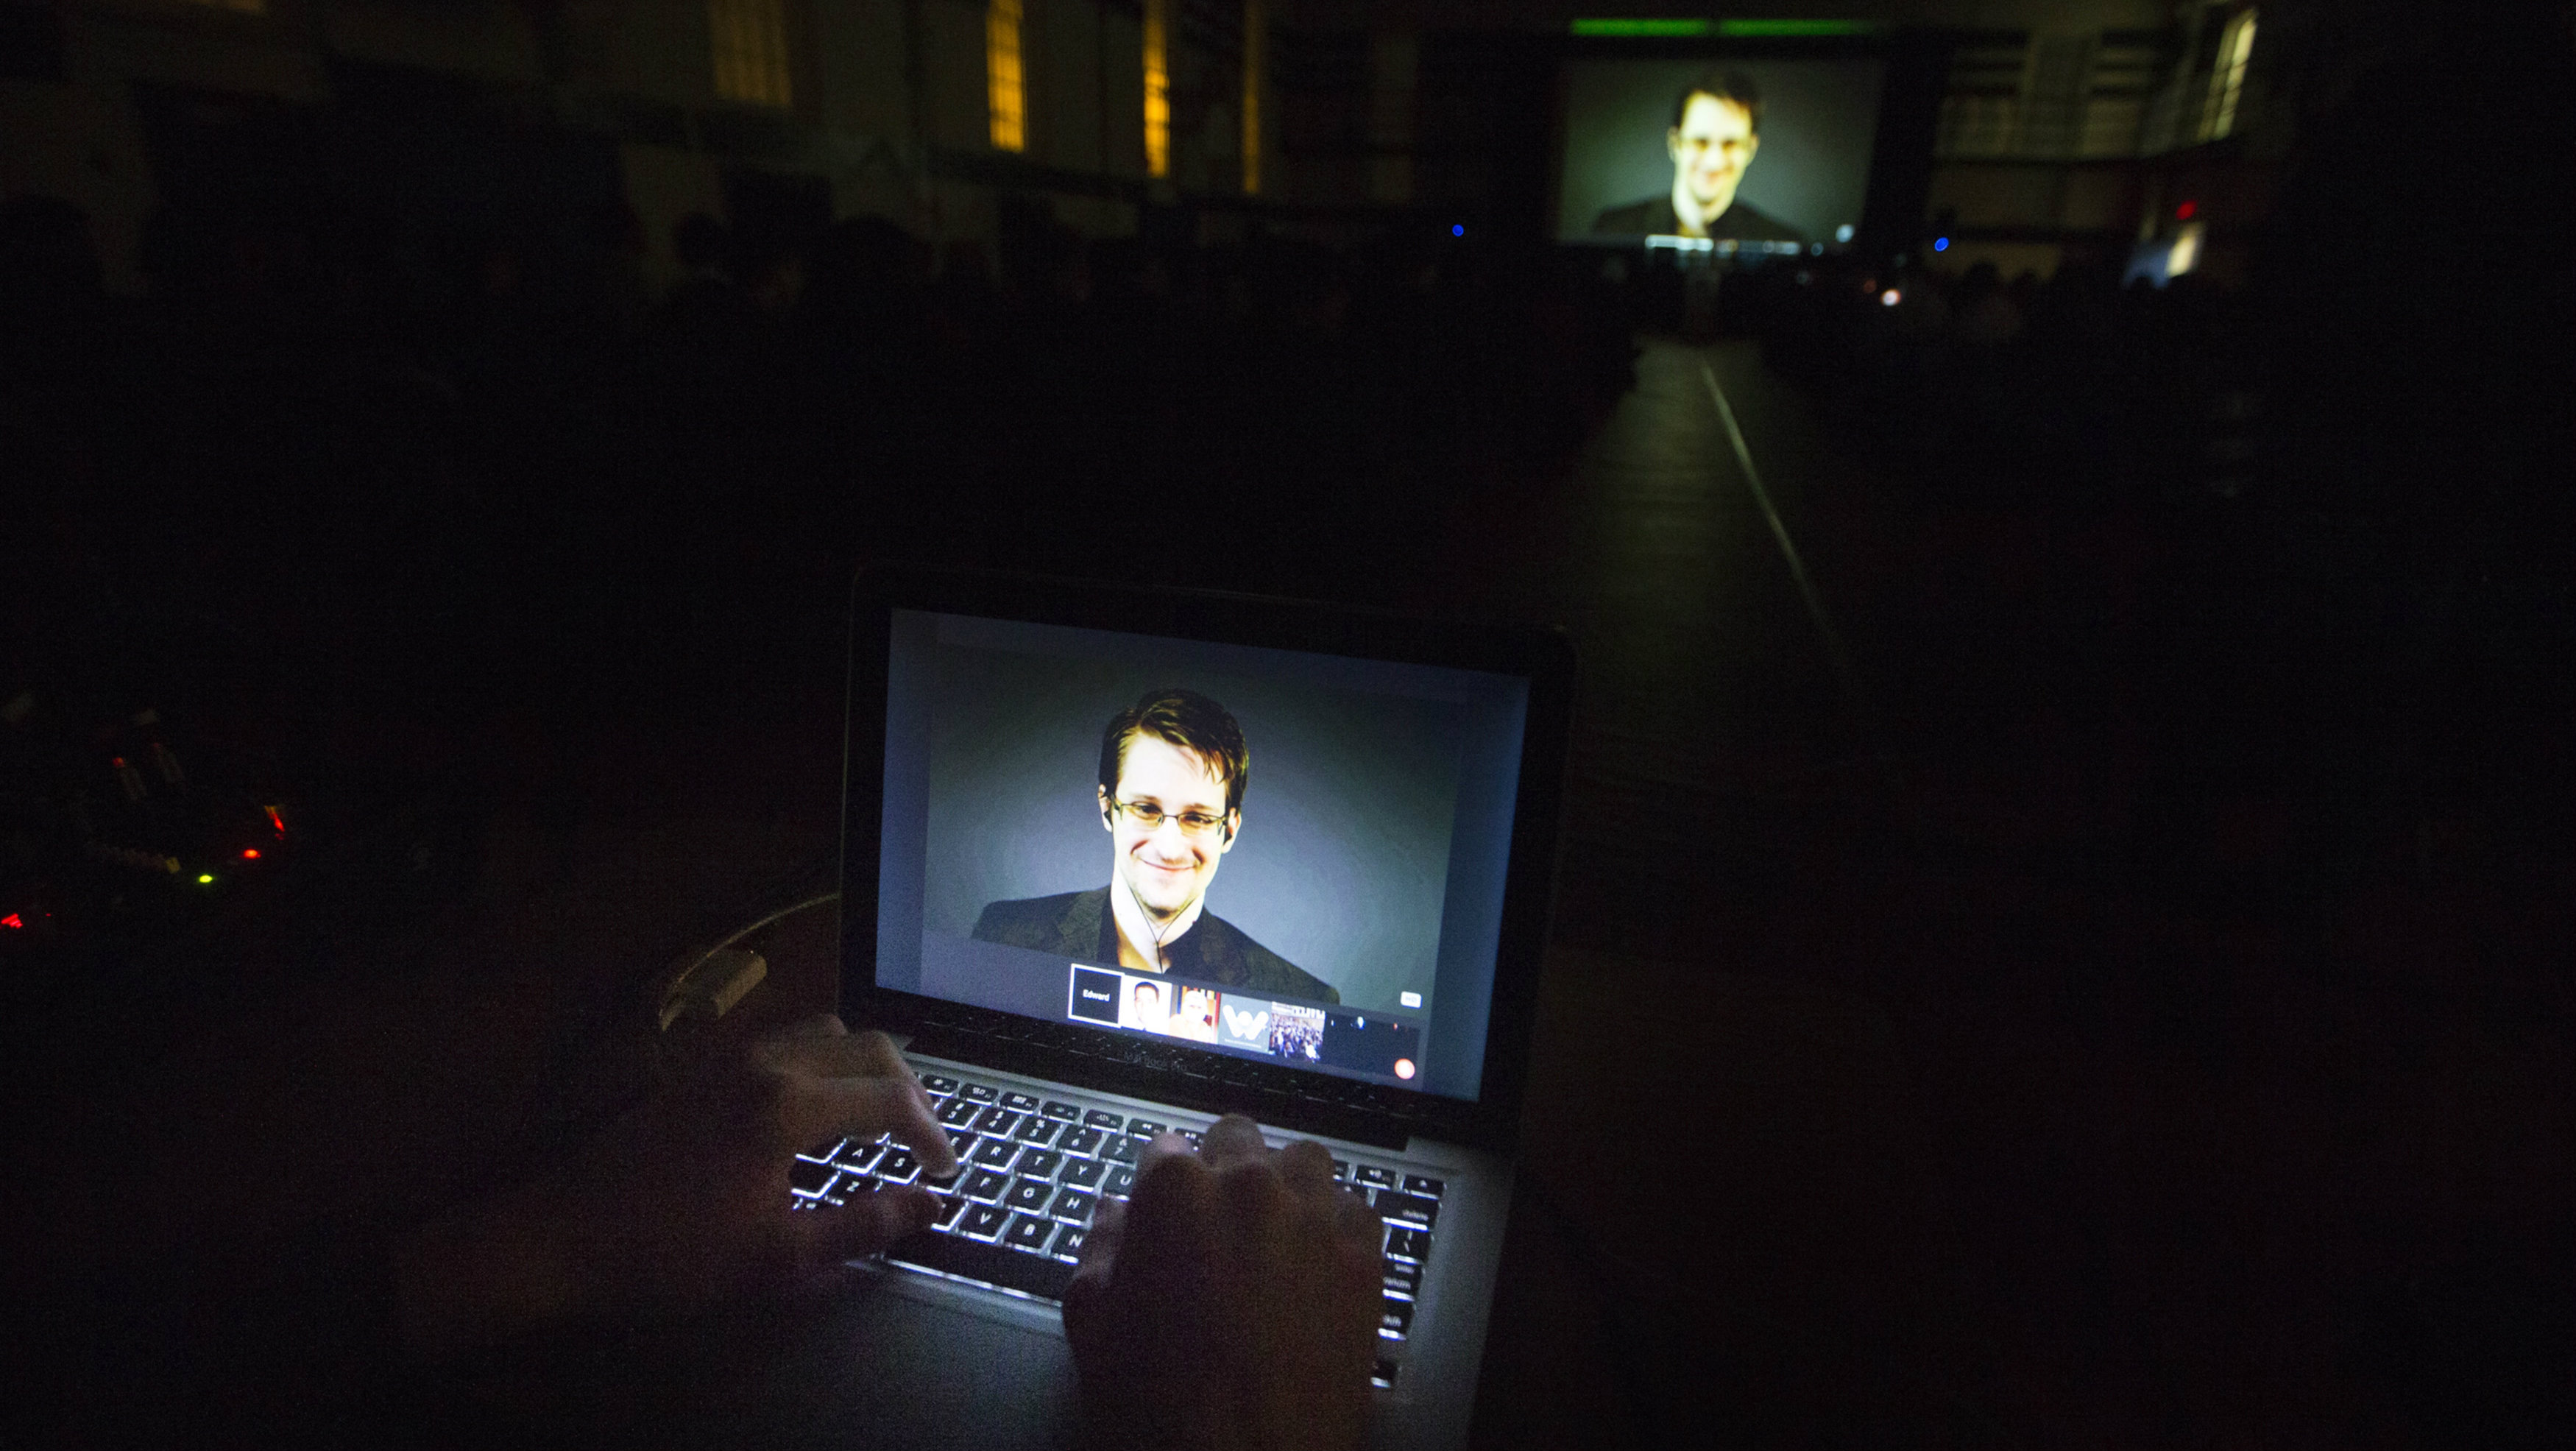 A student works on a computer that is projecting former U.S. National Security Agency contractor Edward Snowden as he appears live via video.